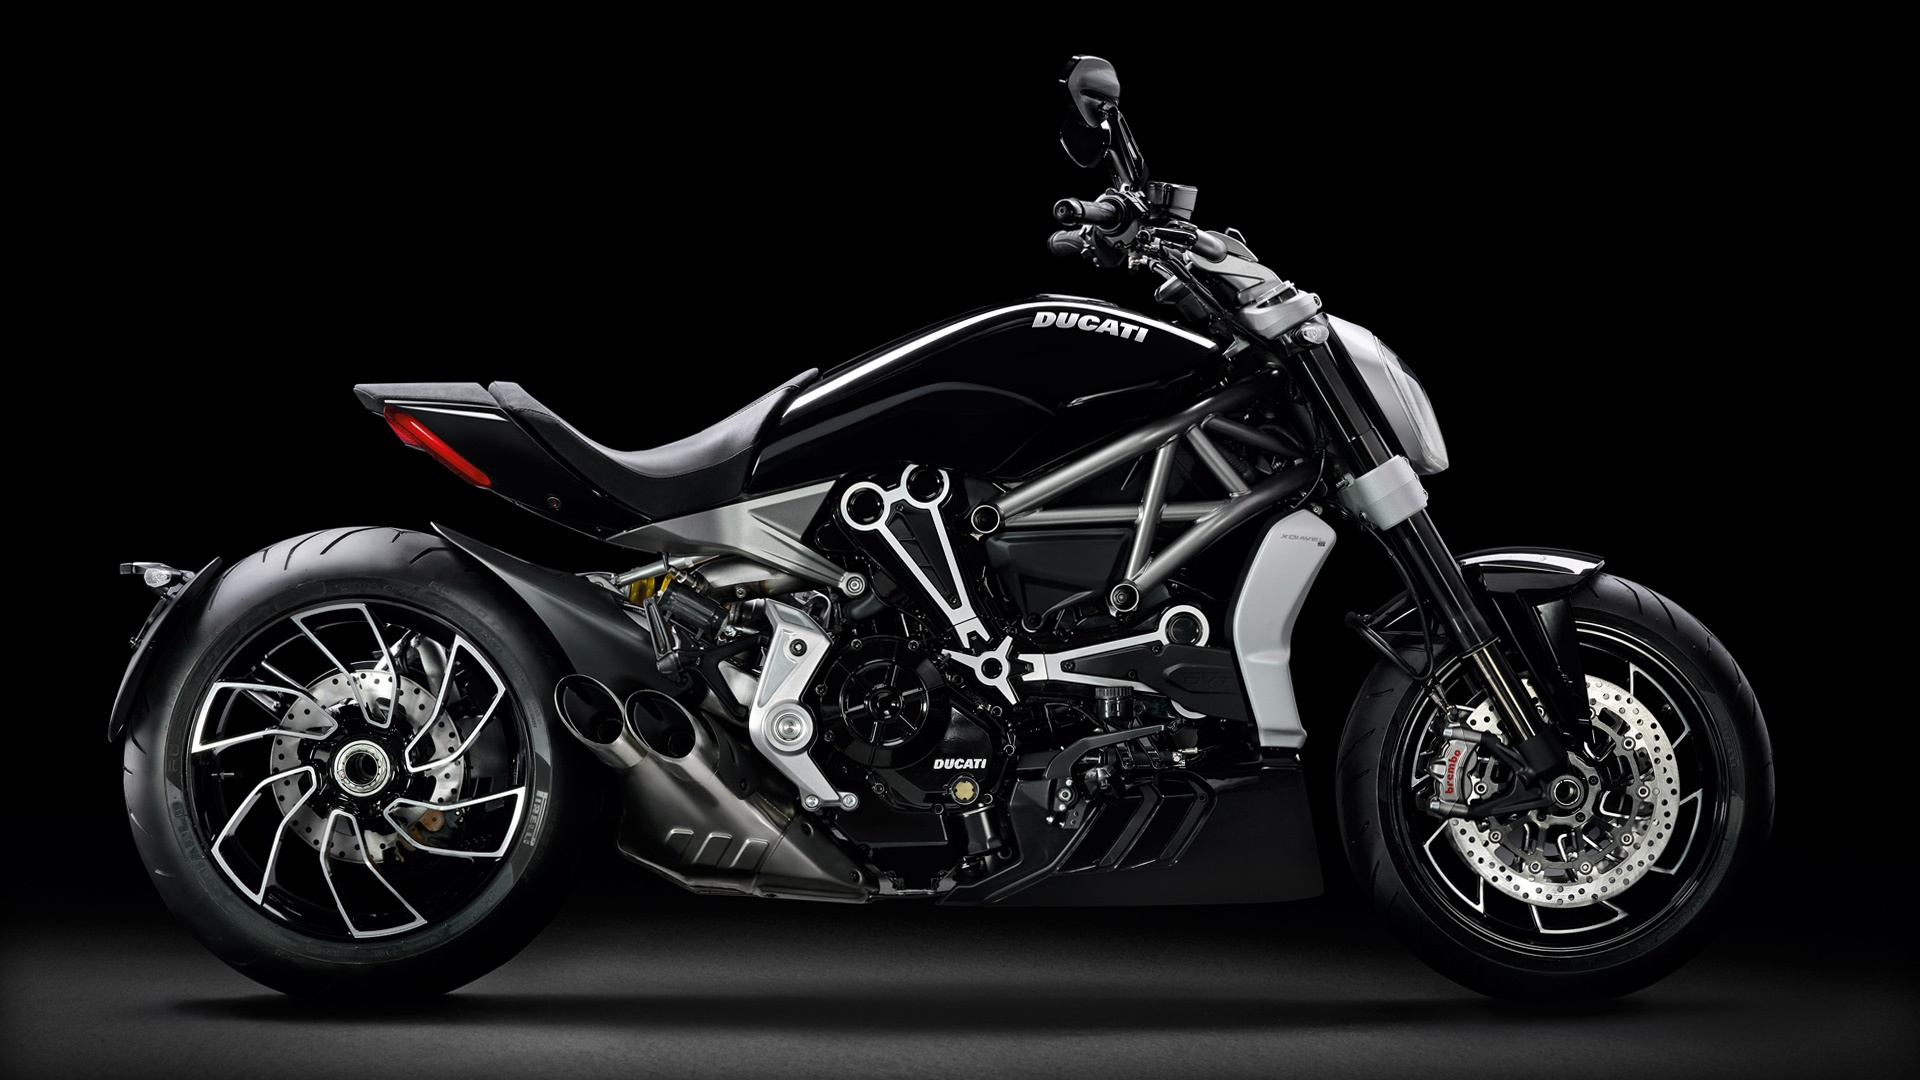 2017 Ducati XDiavel S for sale at Ducati Preston, Lancashire, Scotland